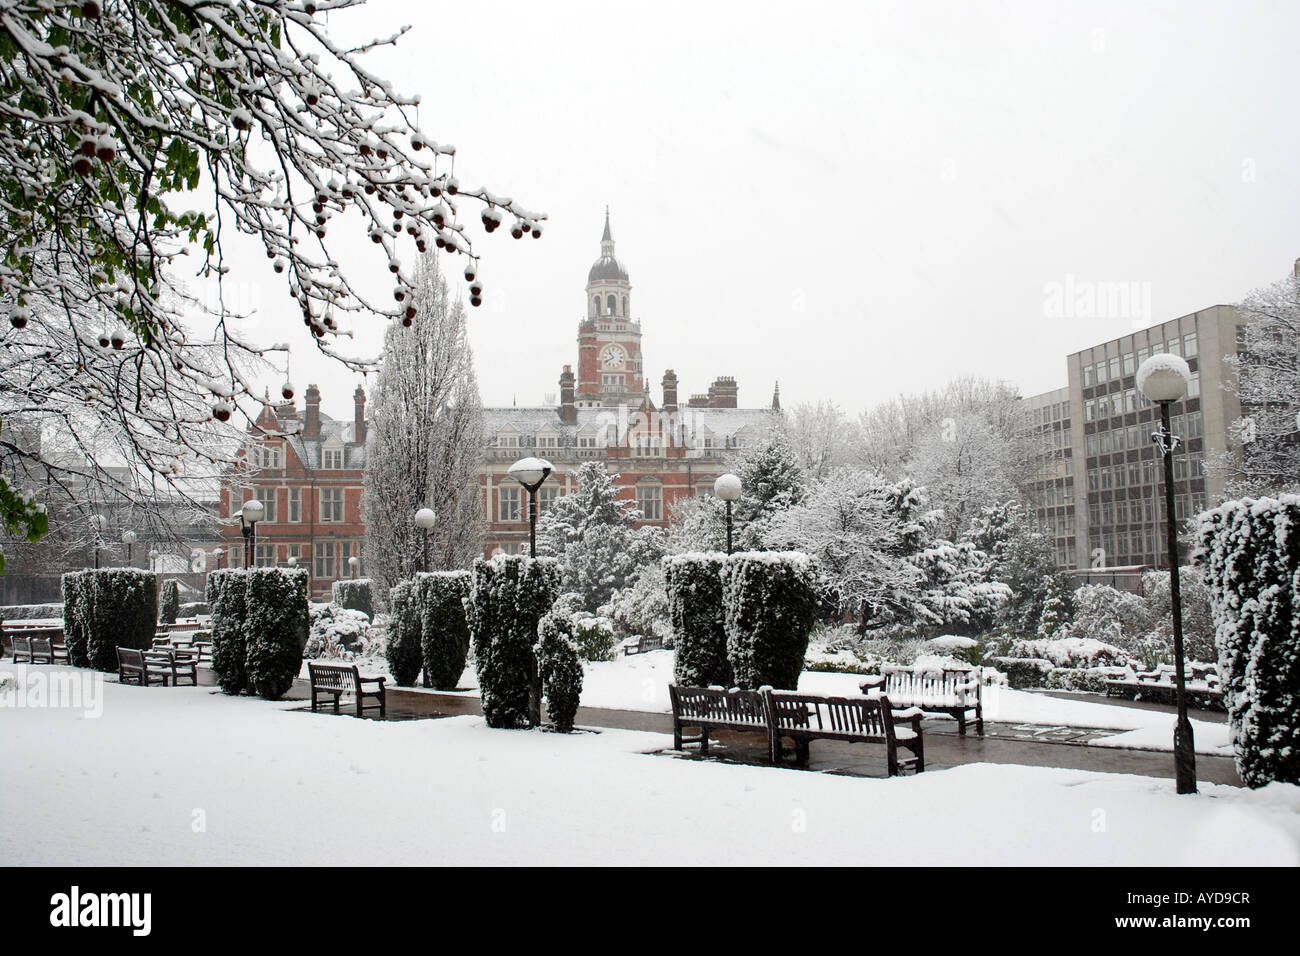 Snow covering Queens Gardens, Croydon, Surrey, UK - Stock Image